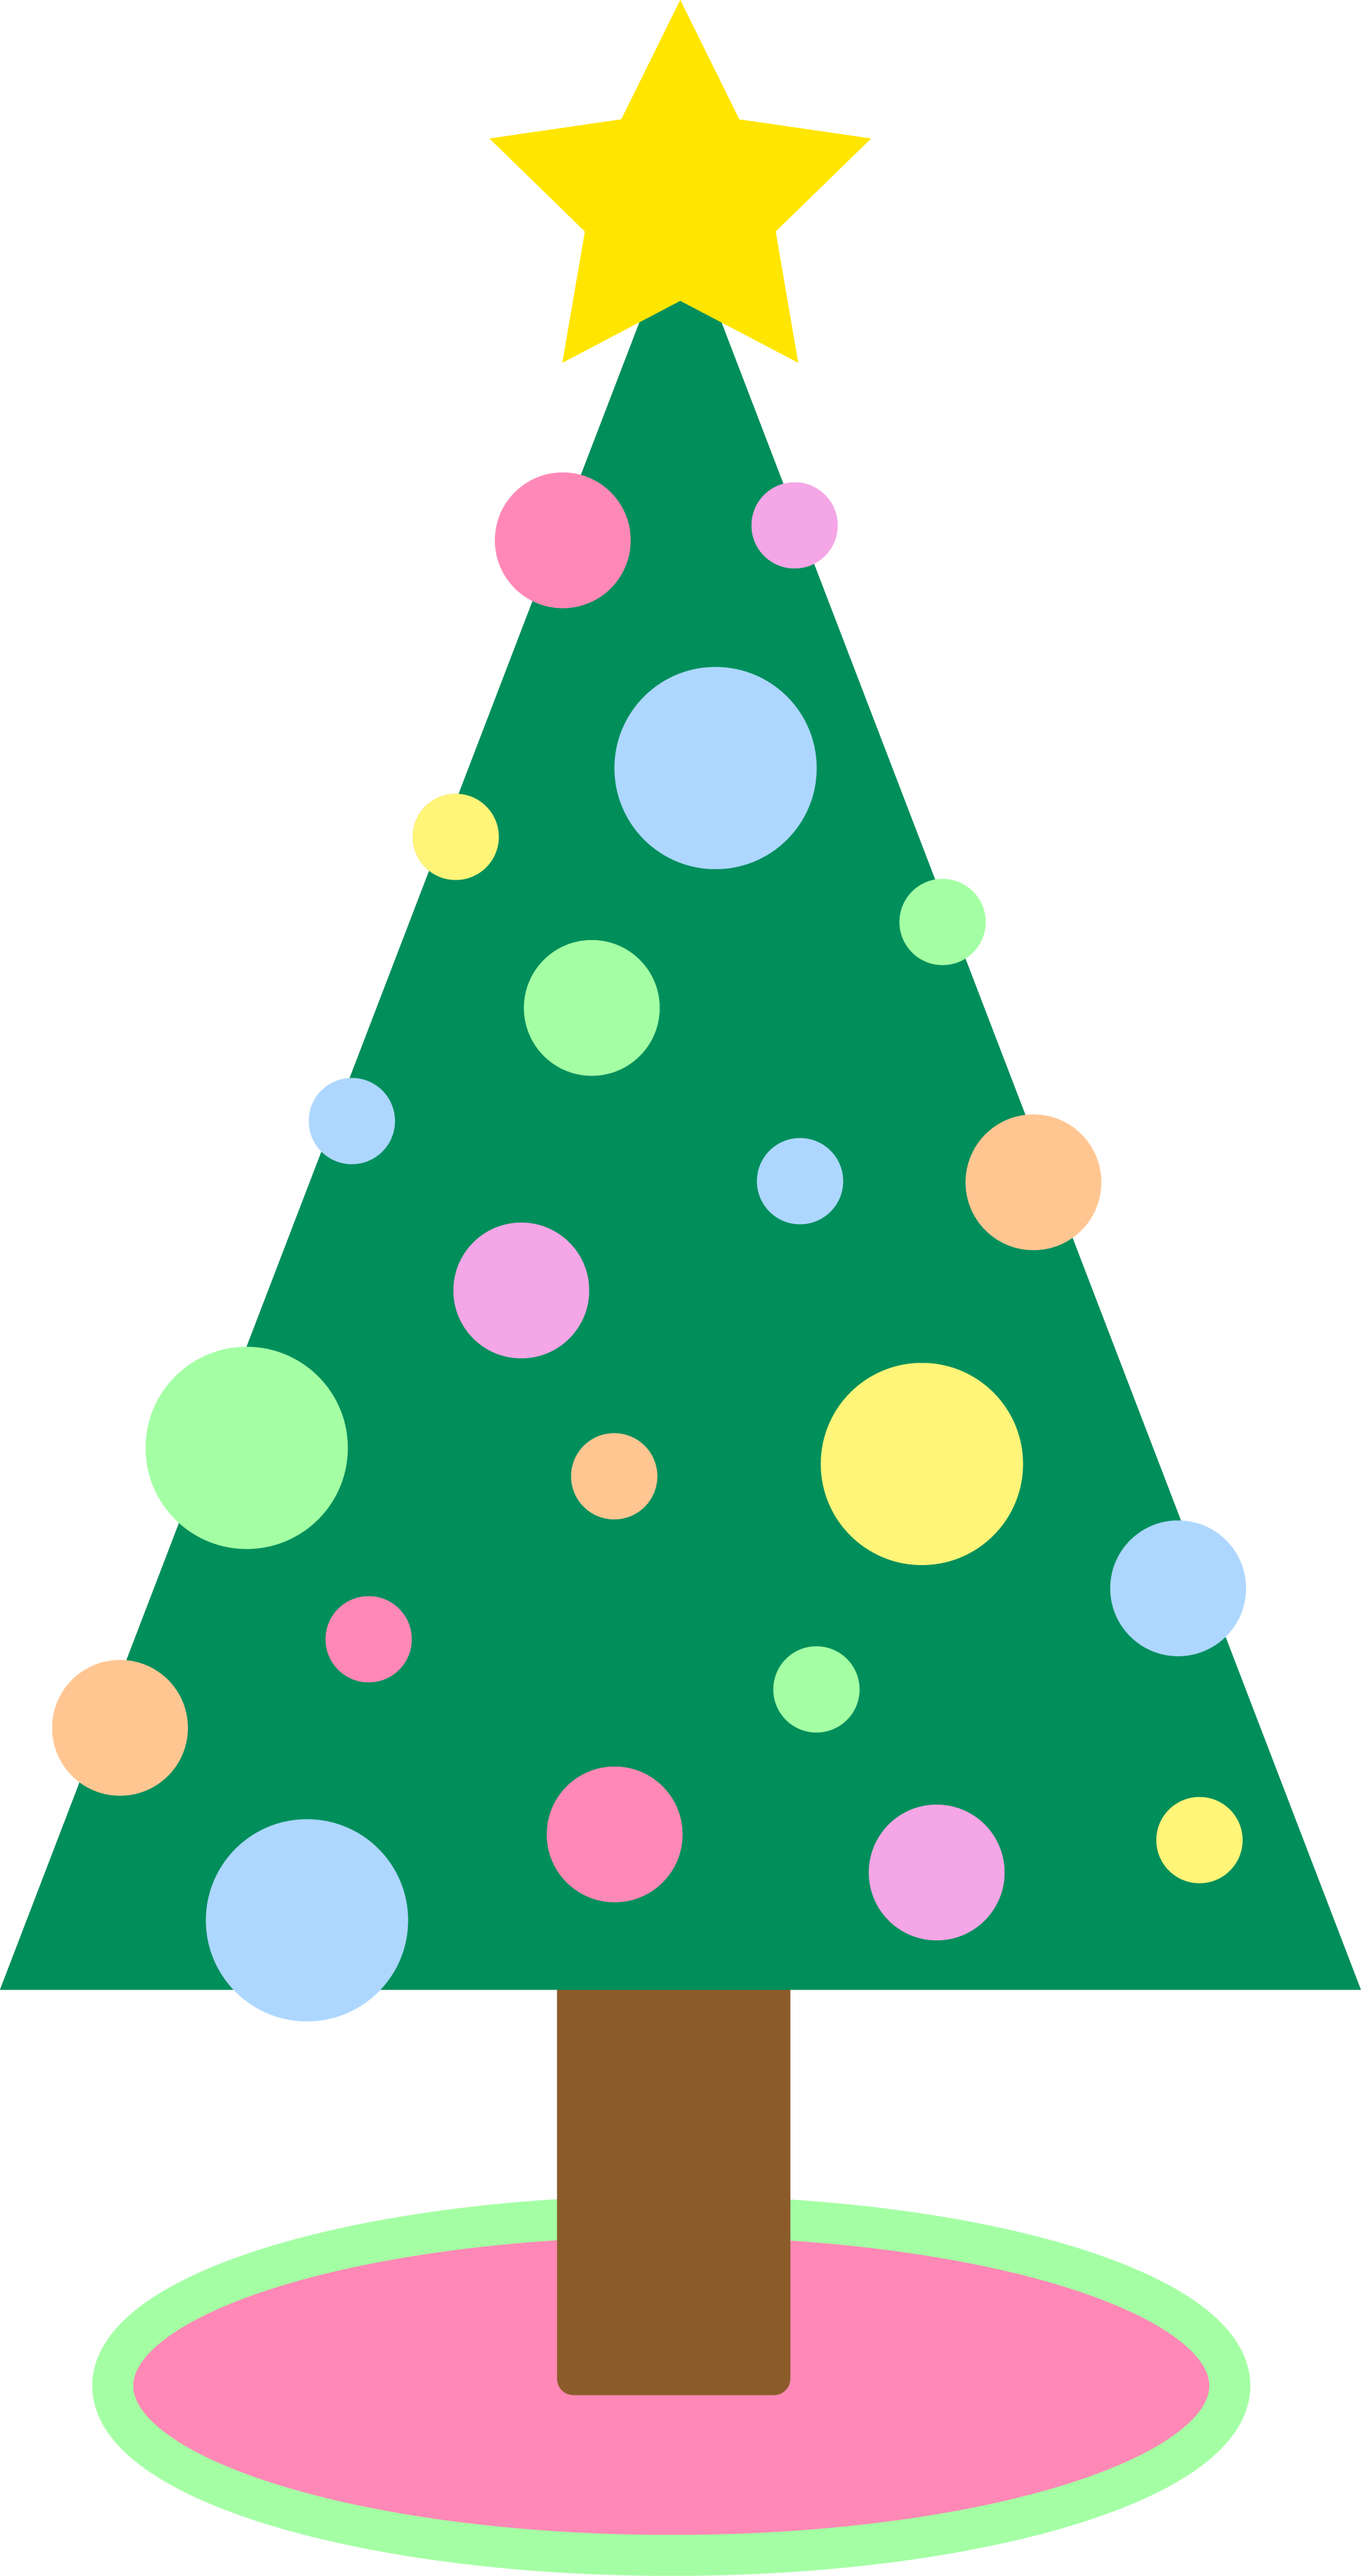 hight resolution of cute simple pastel colored christmas tree free clip art